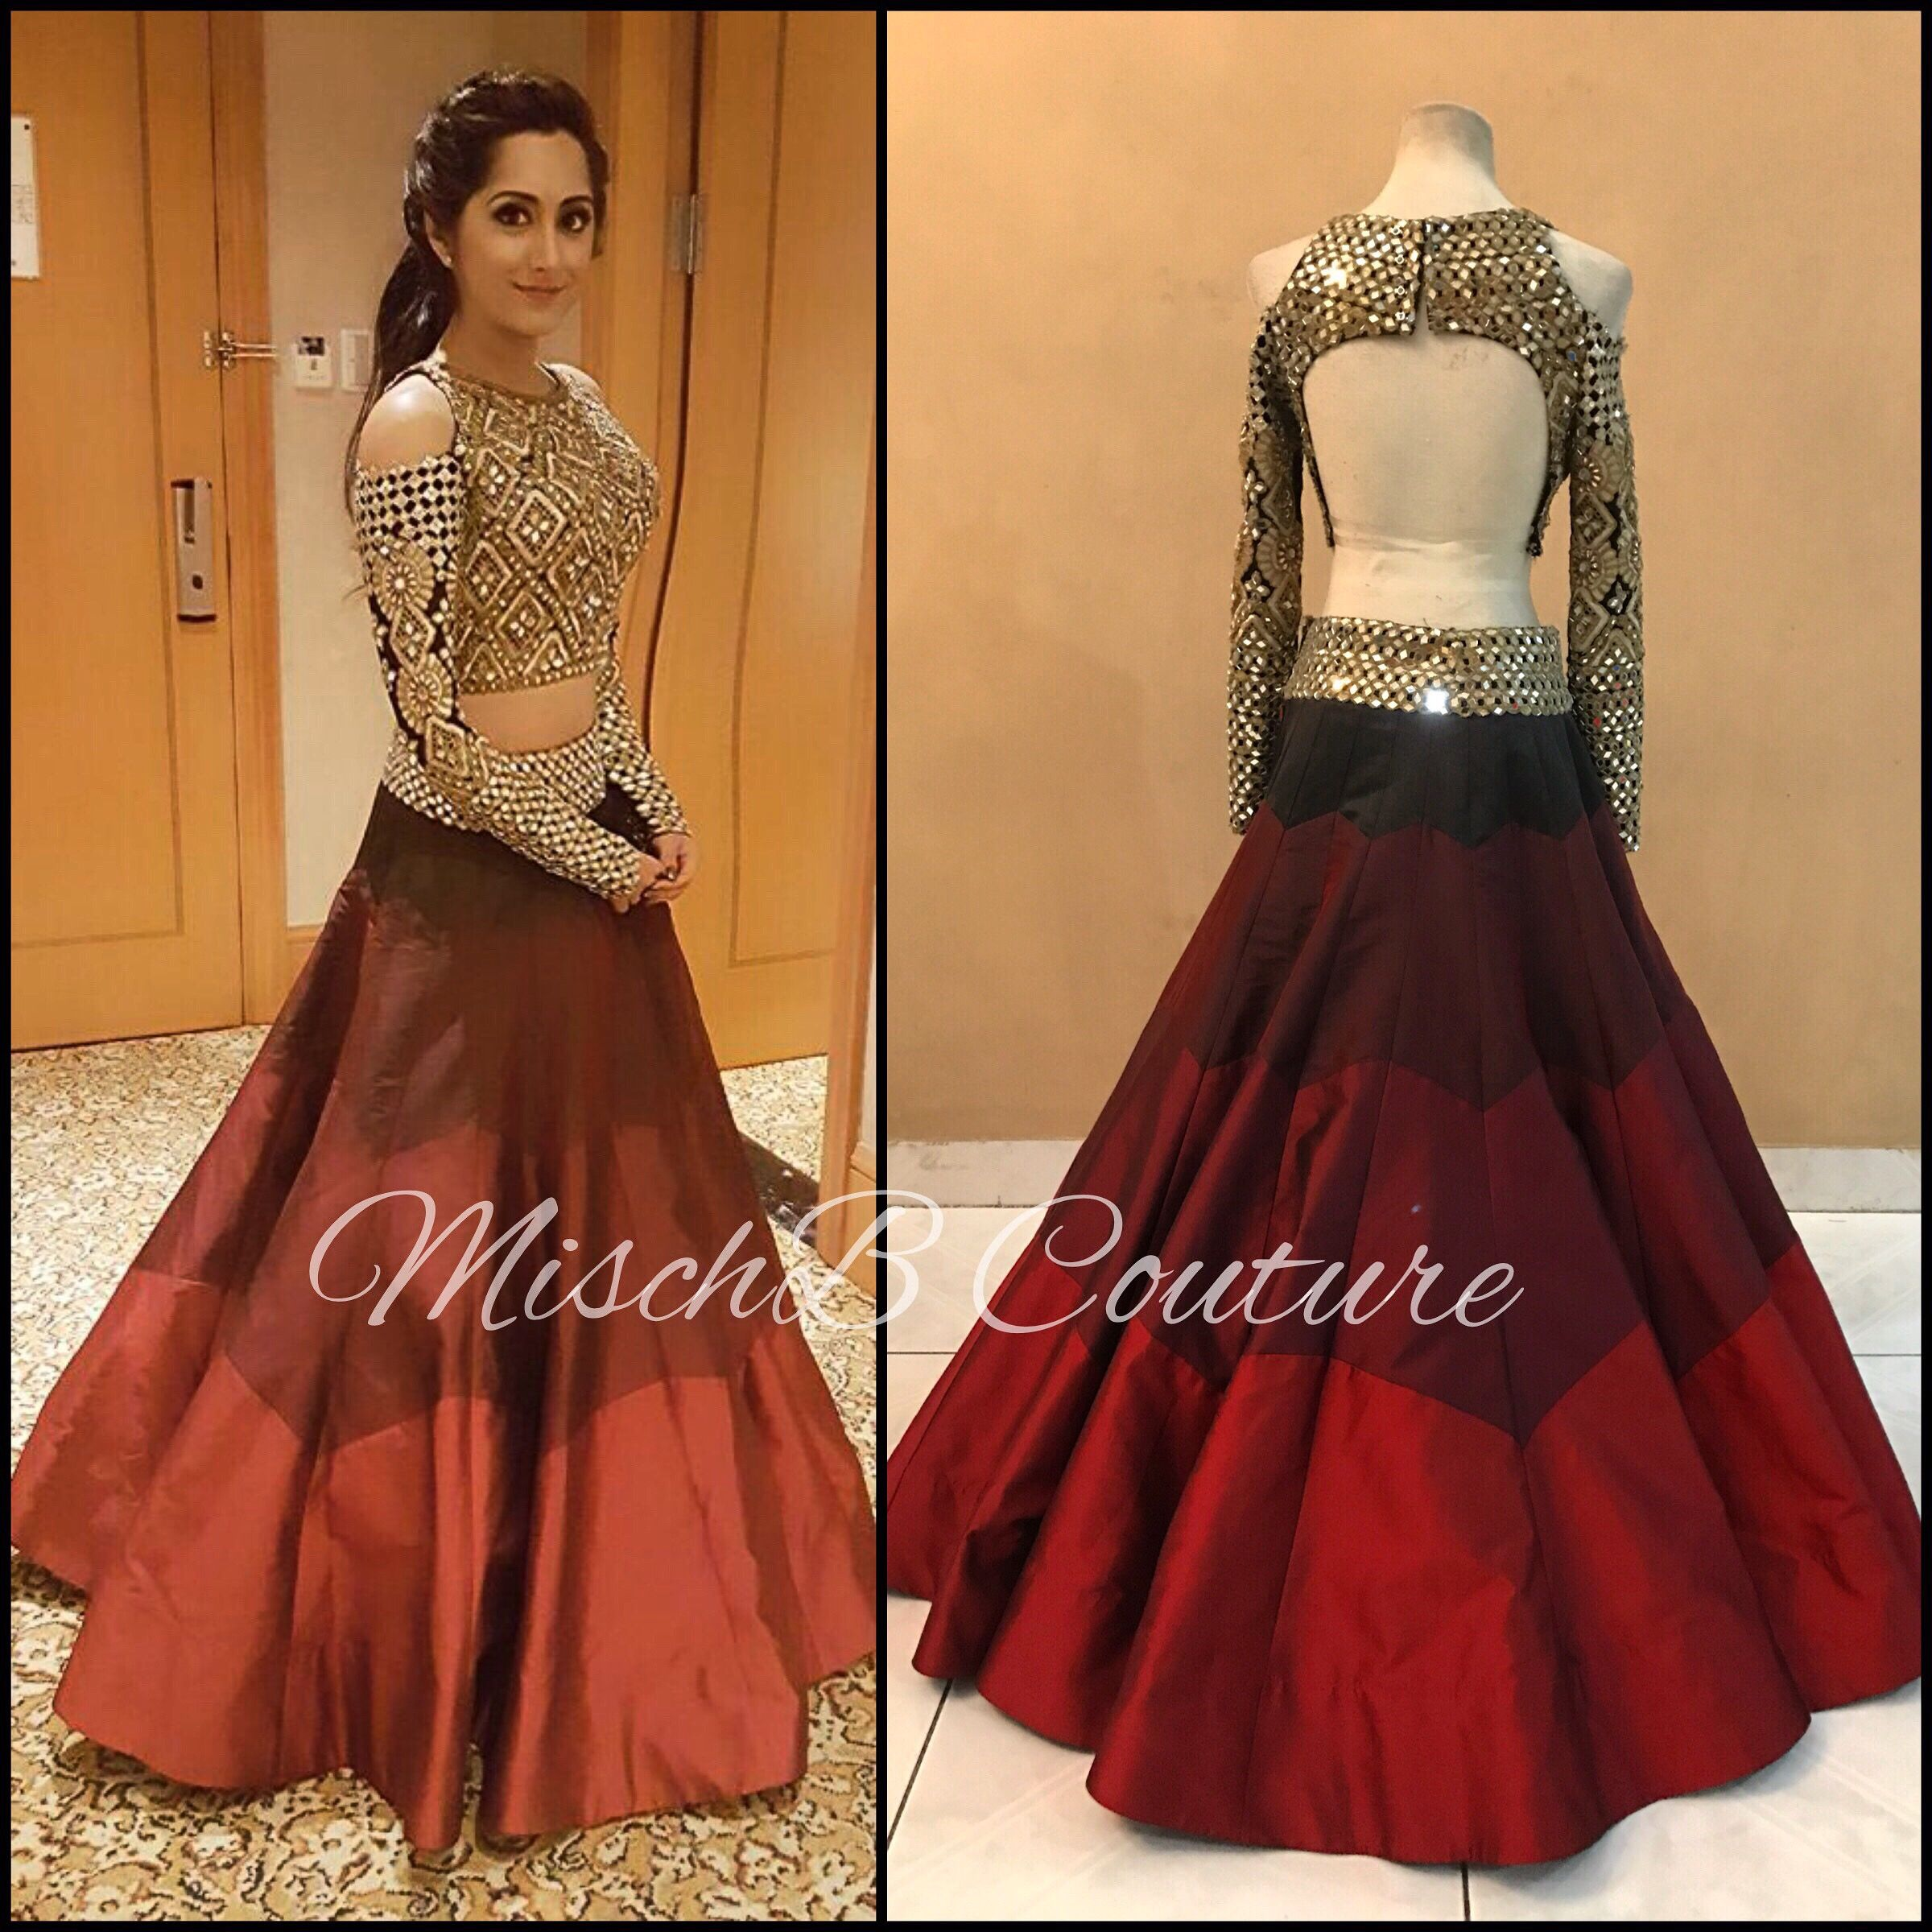 Lehenga blouse design in golden color and mirror work - Mirrorwork Lehenga By Mischb Couture